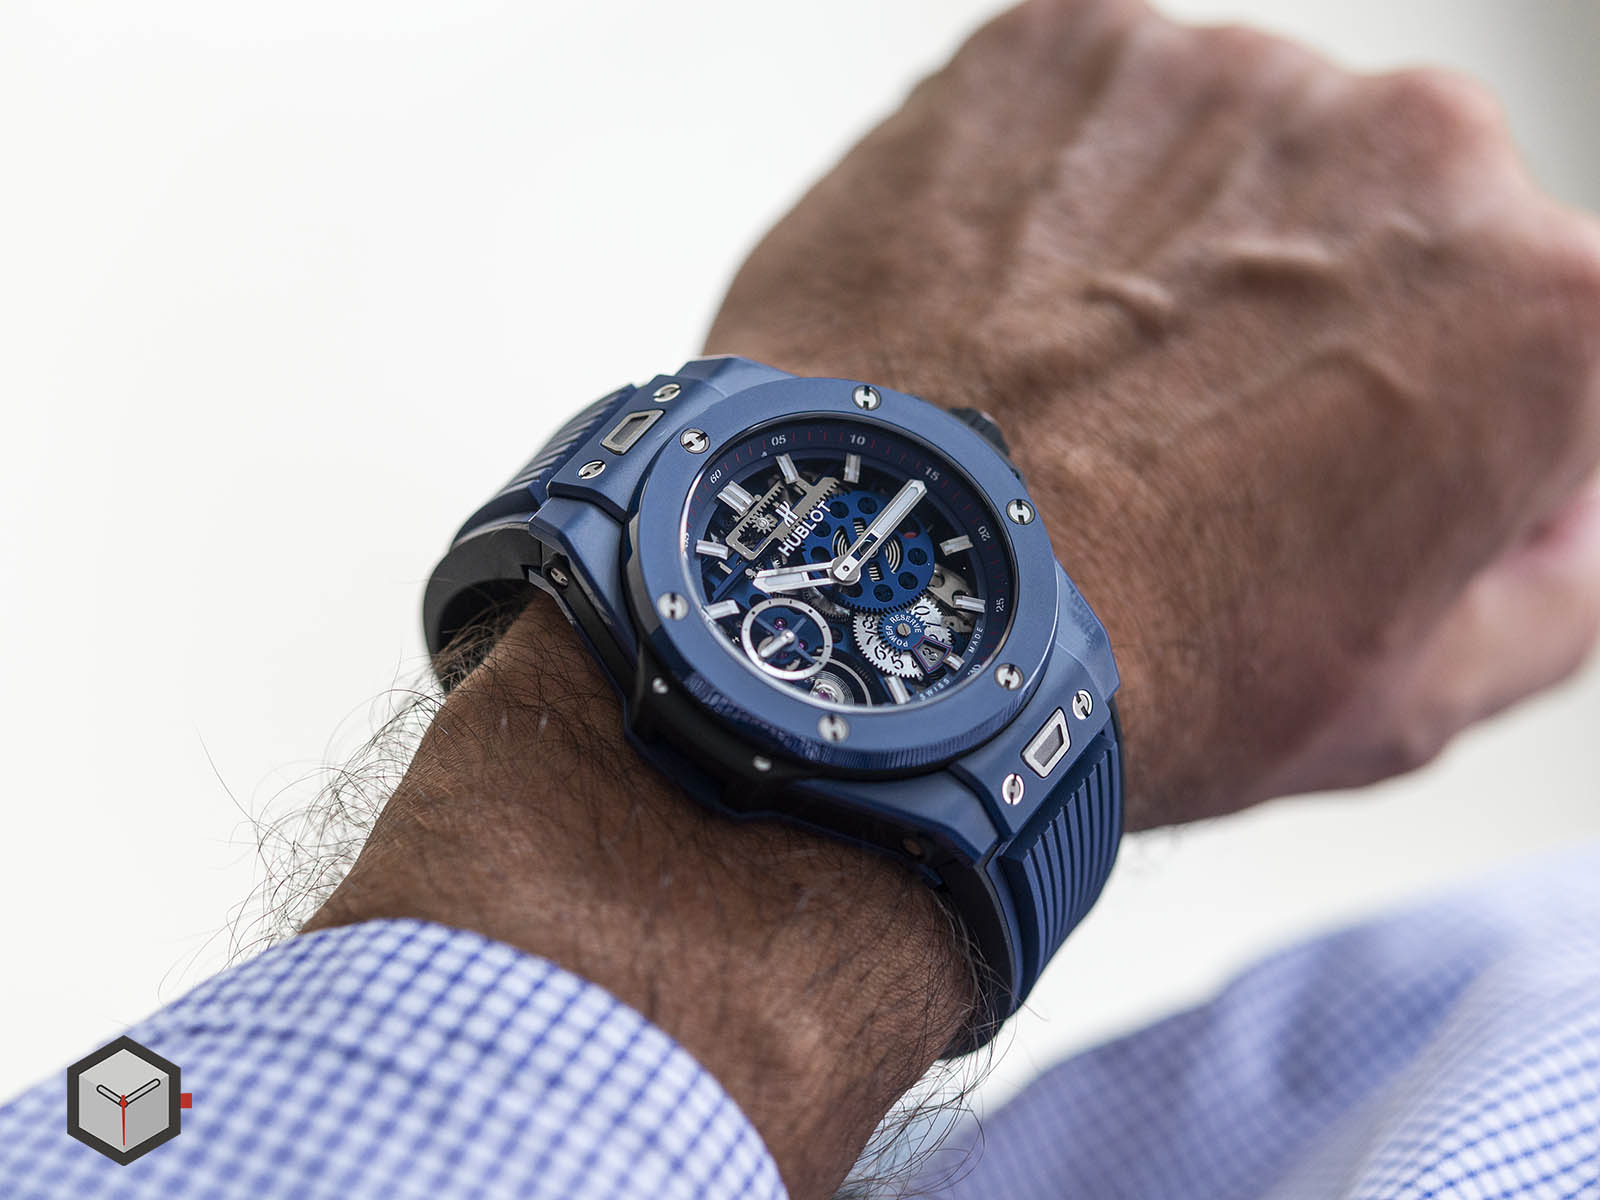 414-ex-5123-rx-hublot-big-bang-meca-10-ceramic-blue-45mm-10.jpg